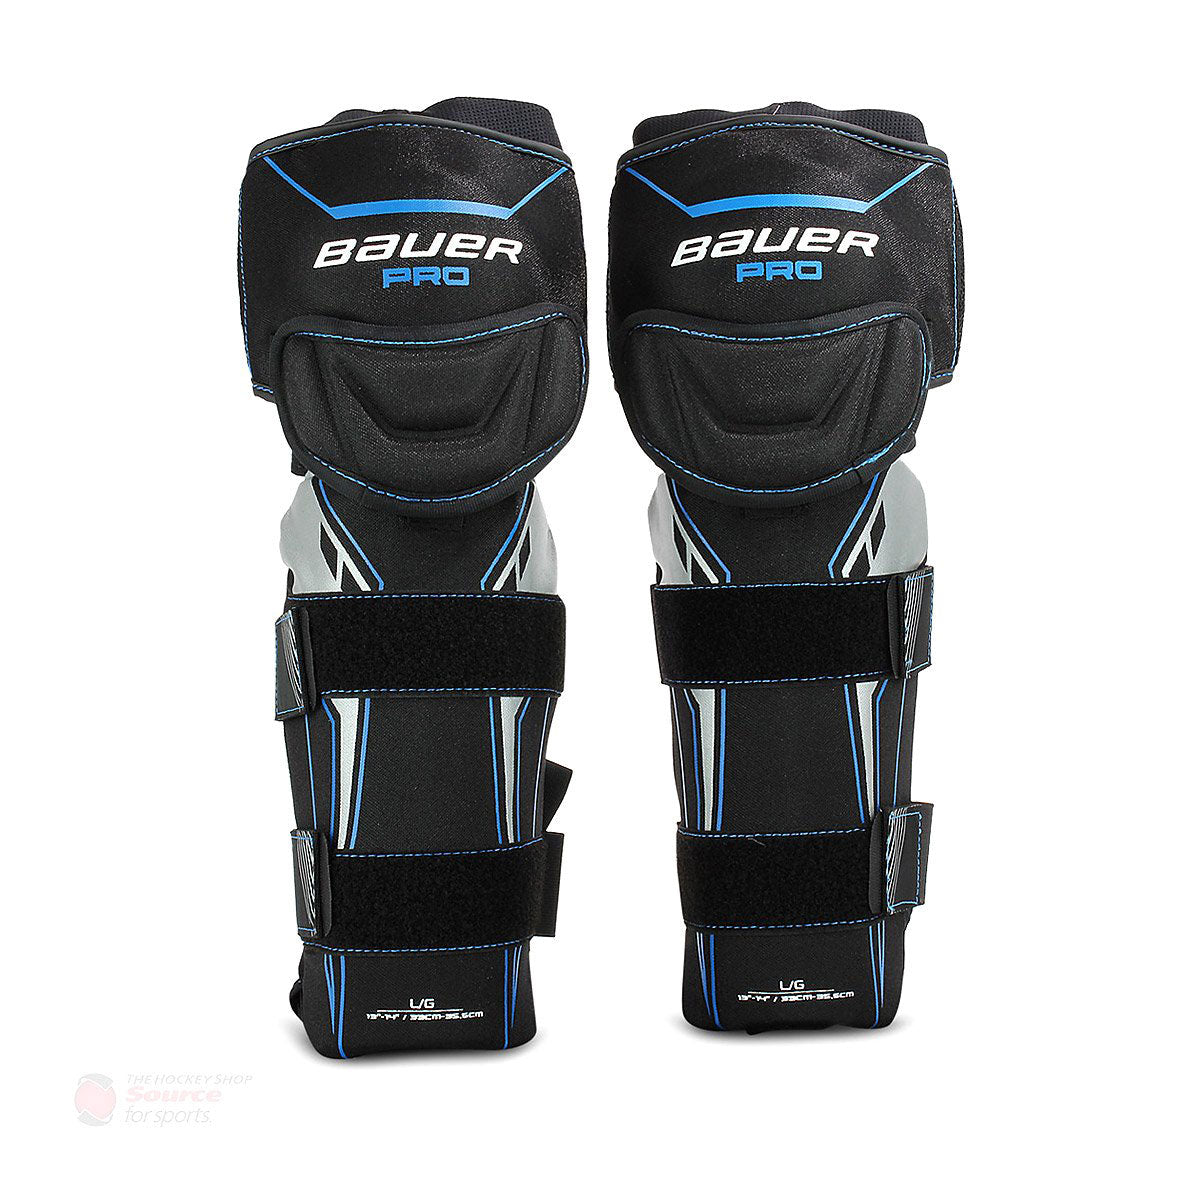 Bauer Pro Junior Ball Hockey Shin Guards